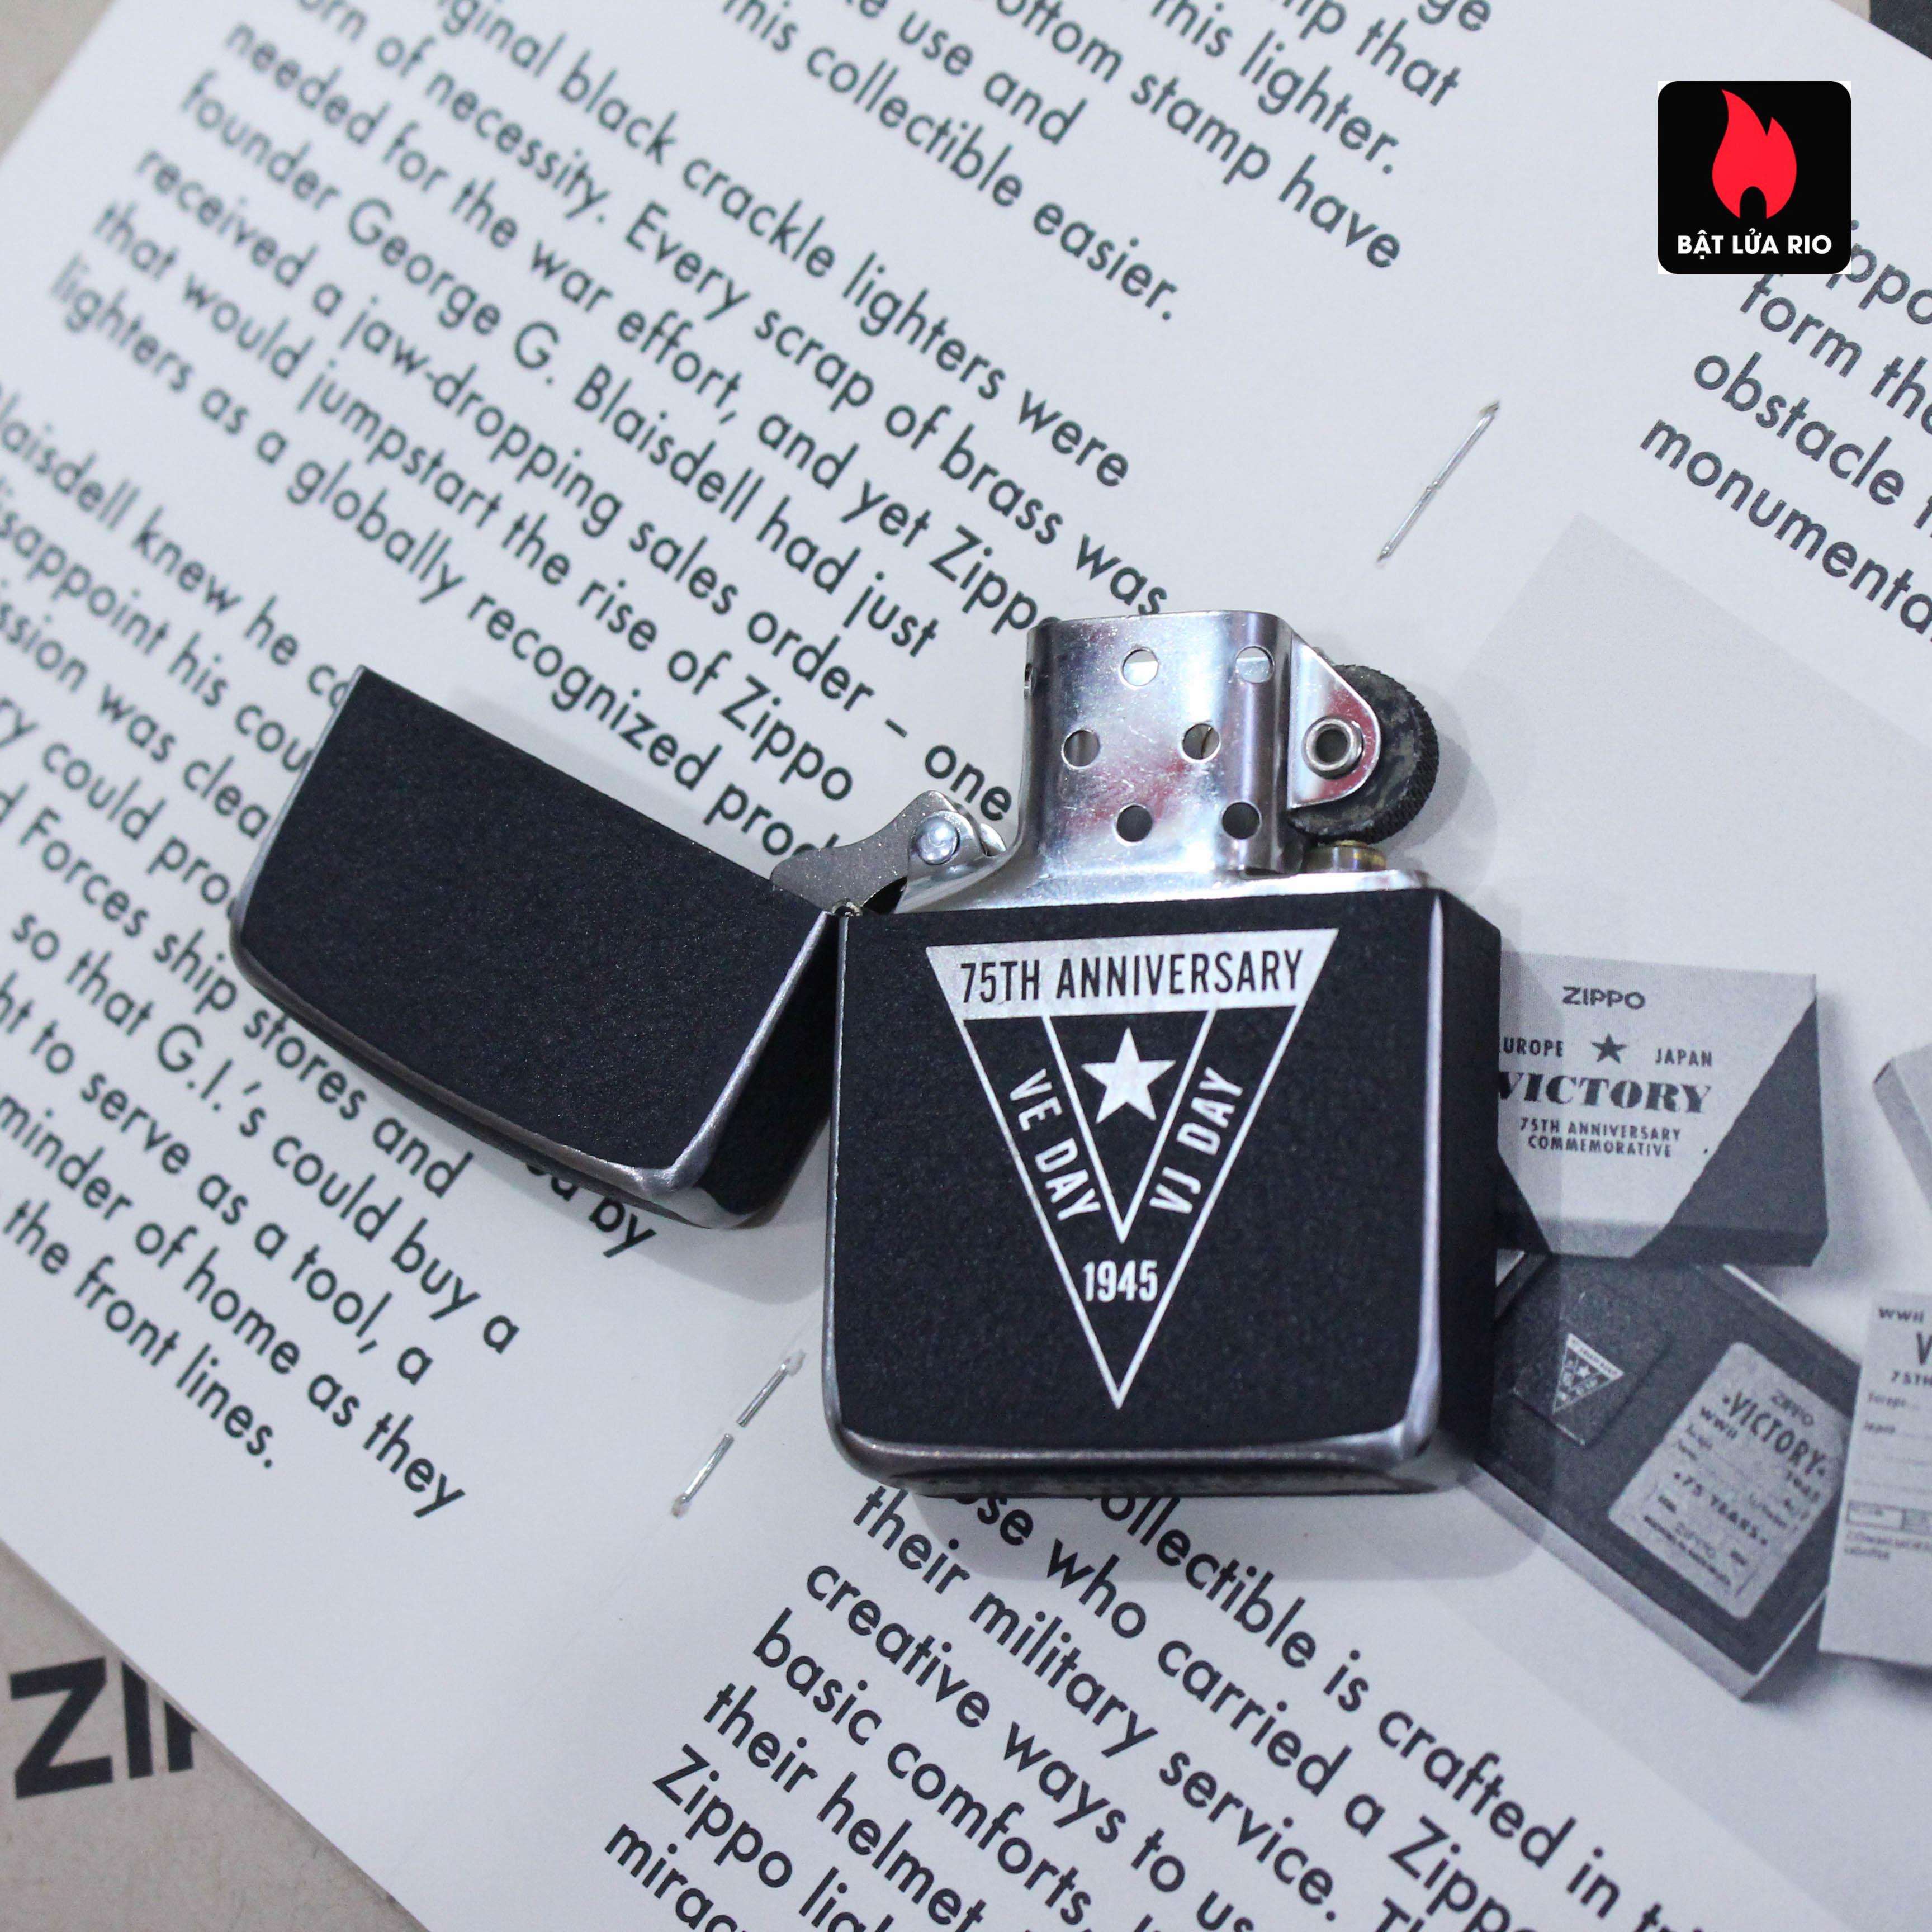 Zippo VE/VJ 75th Anniversary Collectible Steel Case - Zippo Victory in Europe & Japan Collectible Lighter - Zippo 49264 57